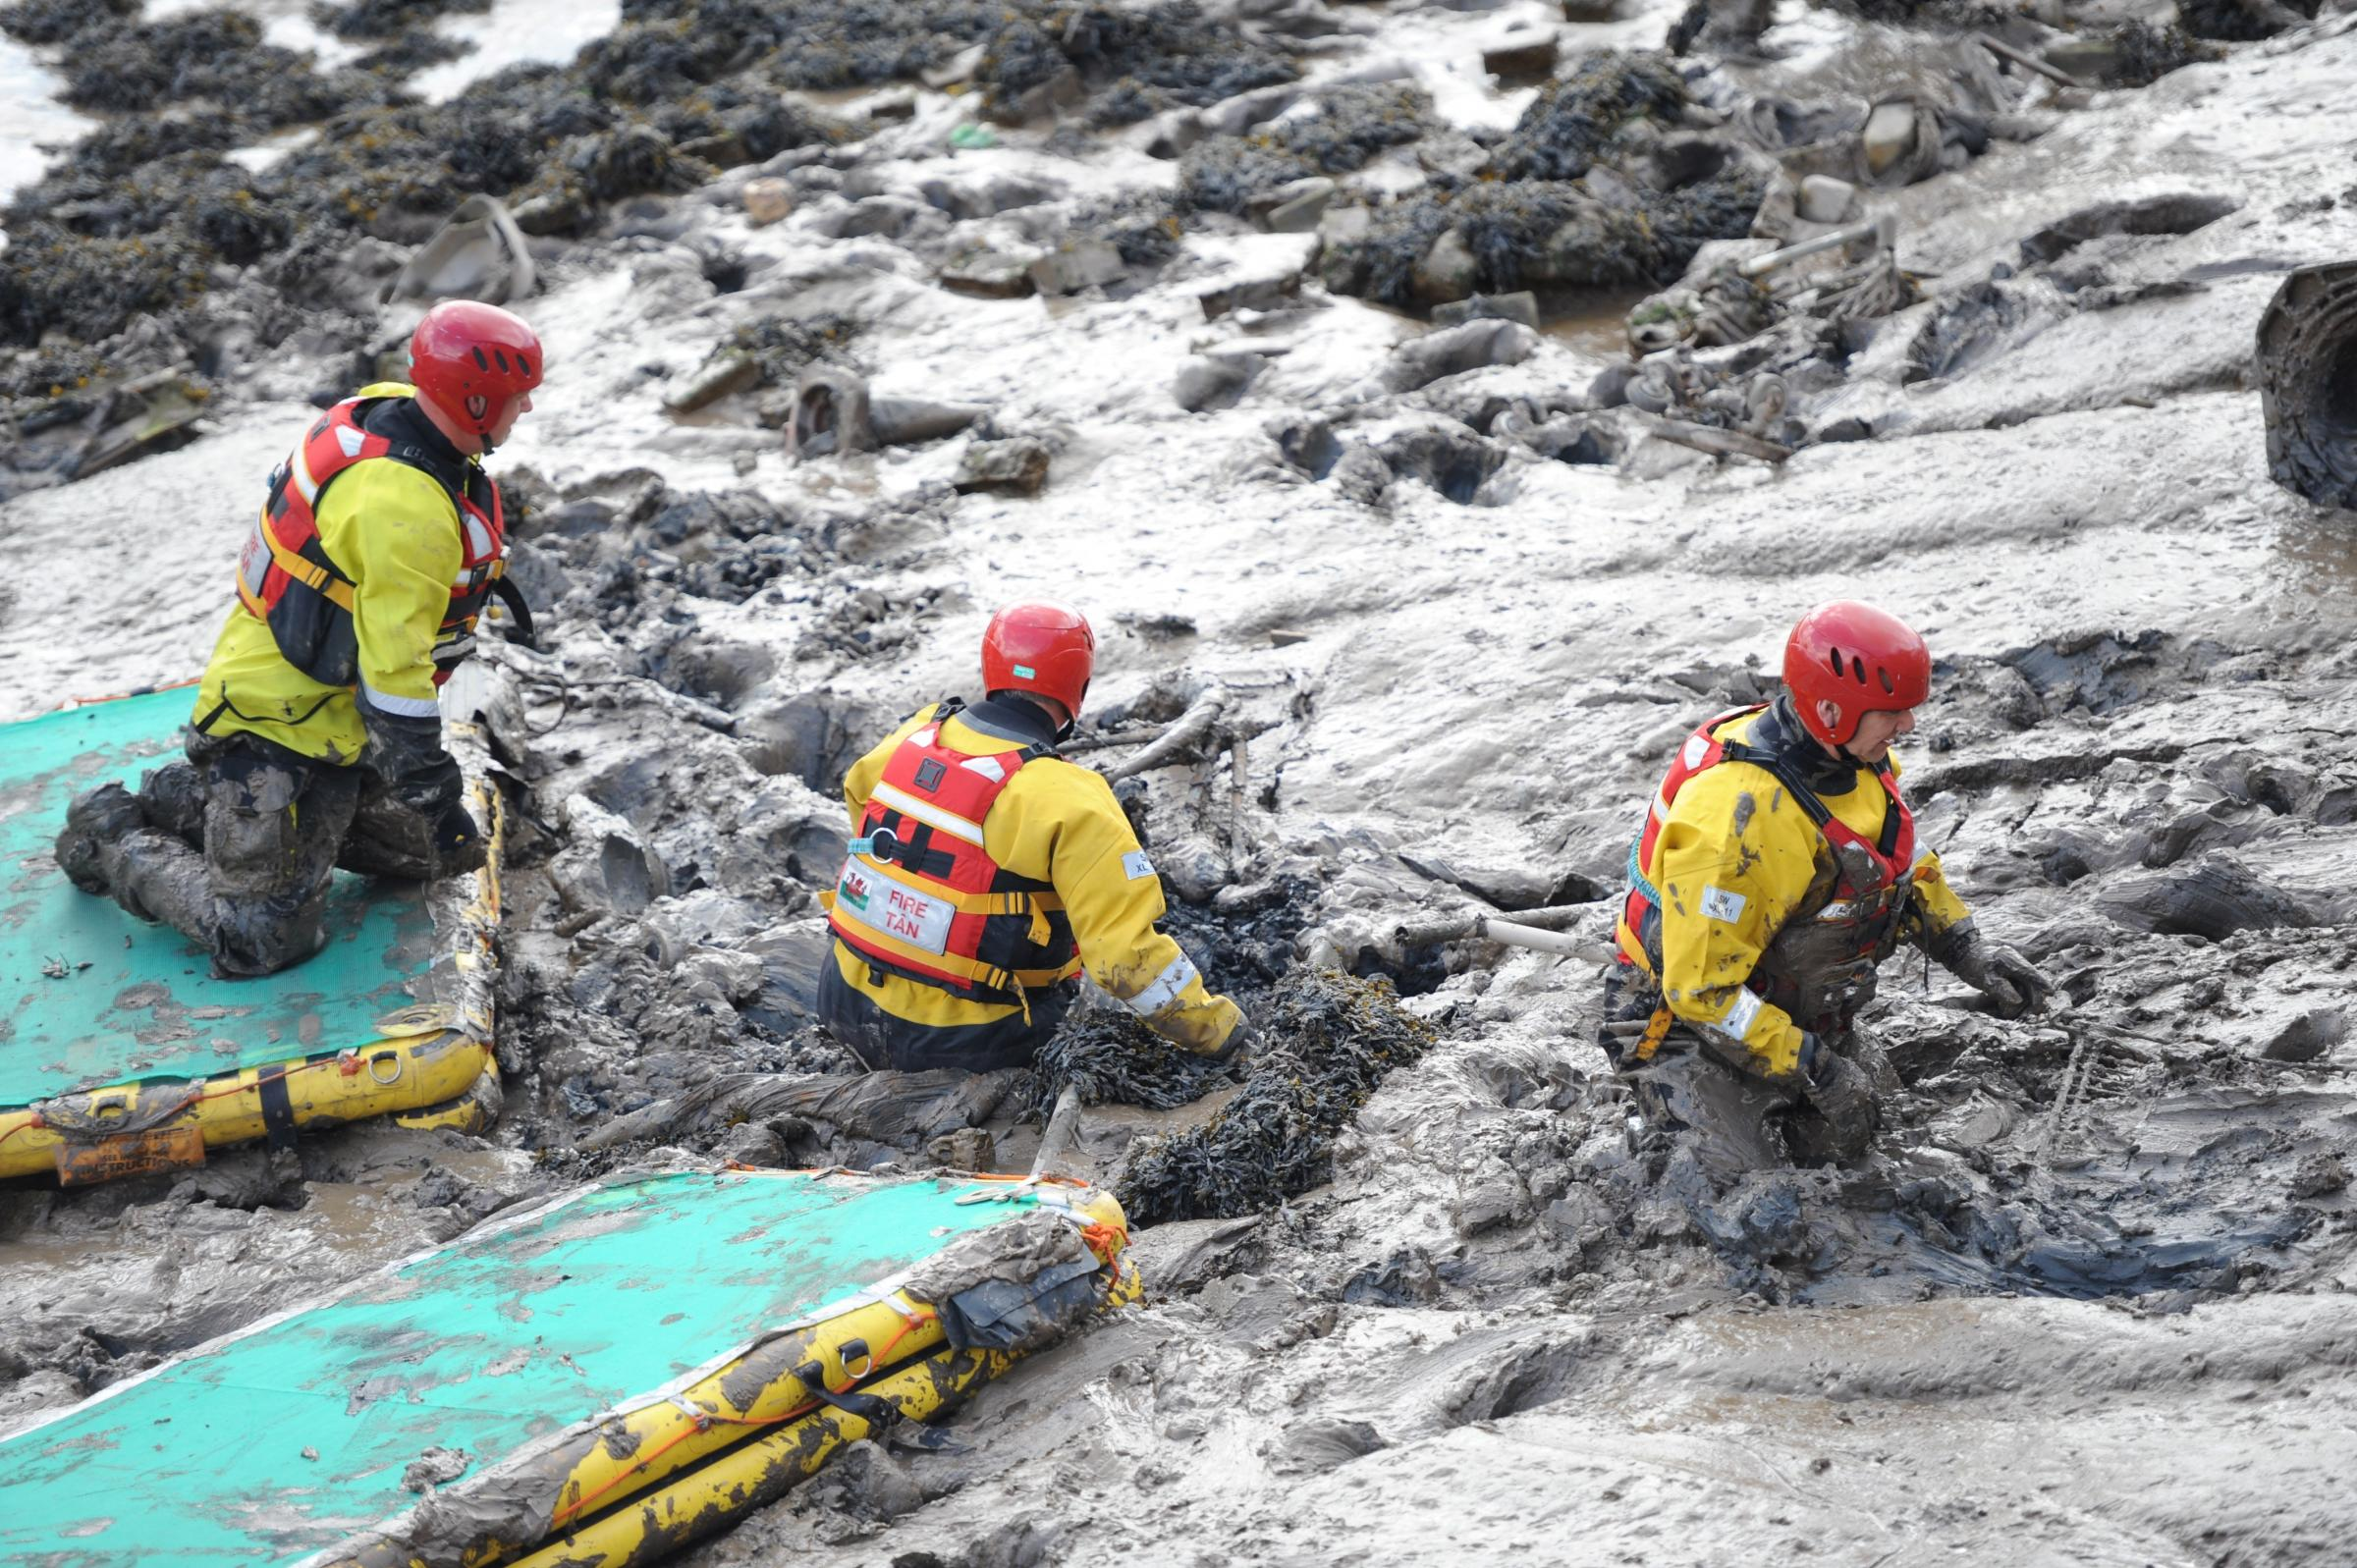 Firefighters clean up at River Usk